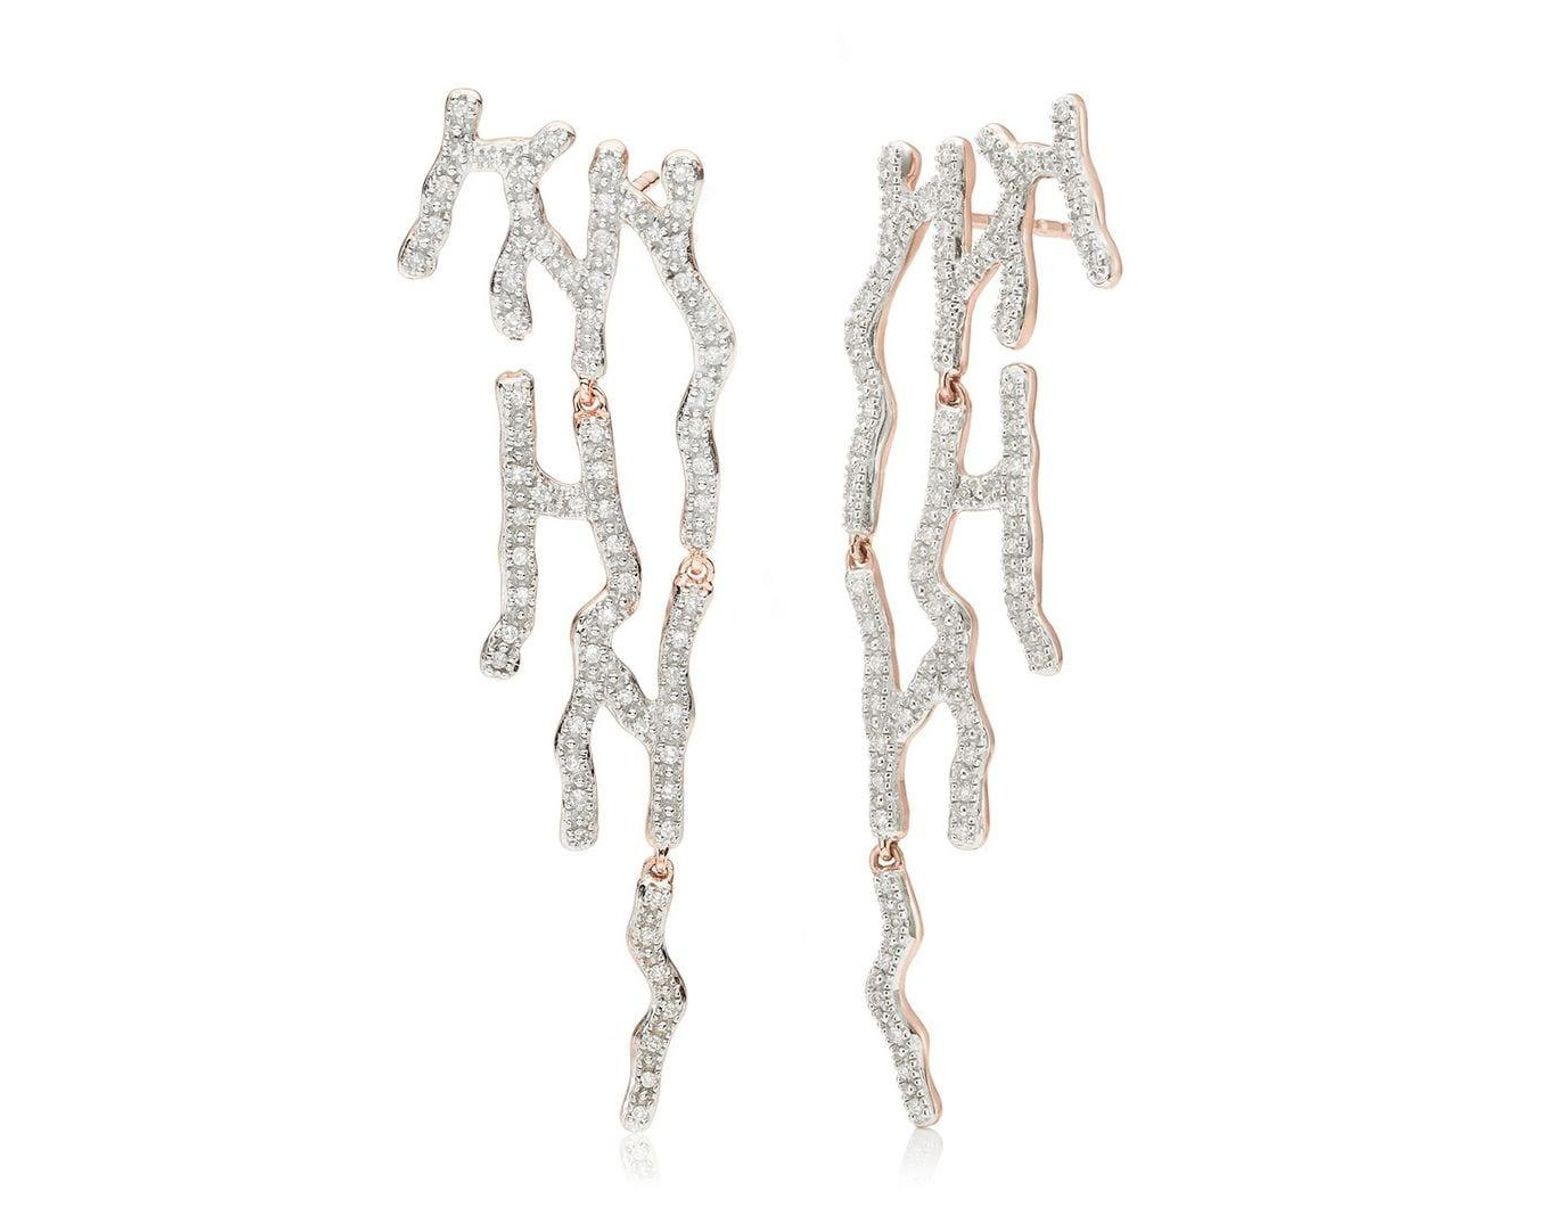 ce7874f088bfc Monica Vinader Rp Riva Waterfall Cocktail Diamond Earrings in ...